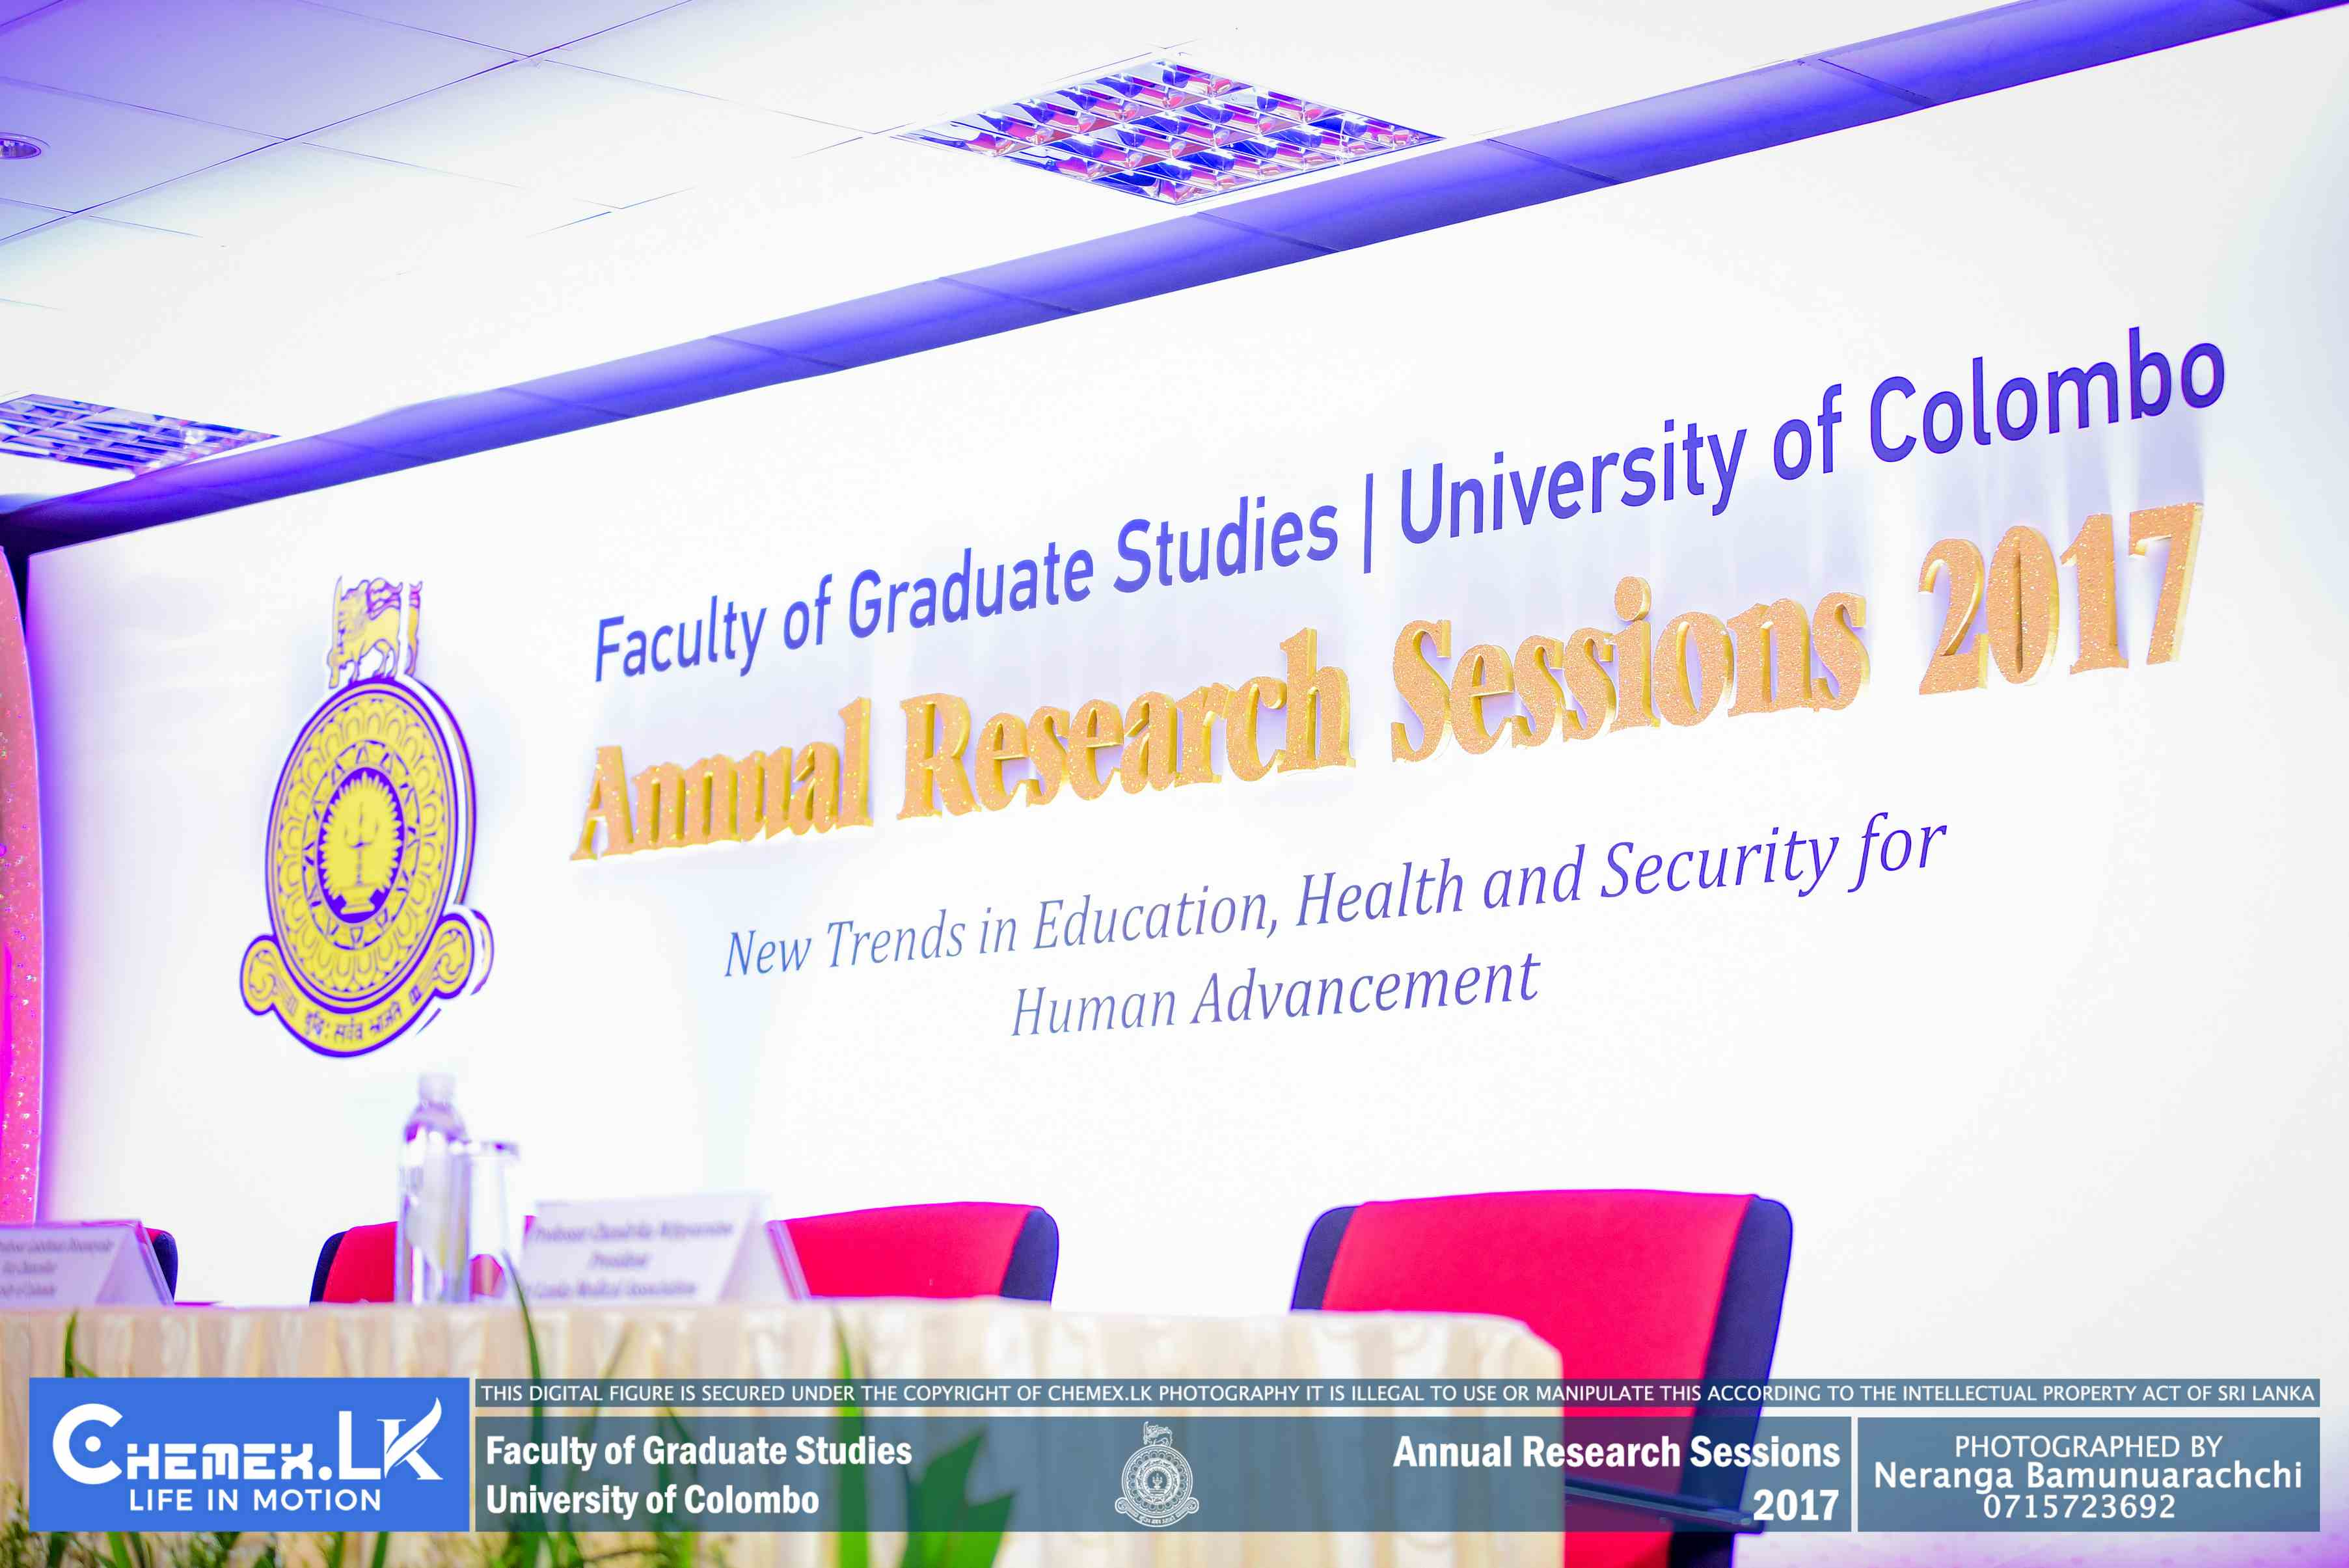 Annual Research Session 2017 Faculty of Graduate Studies – University of Colombo